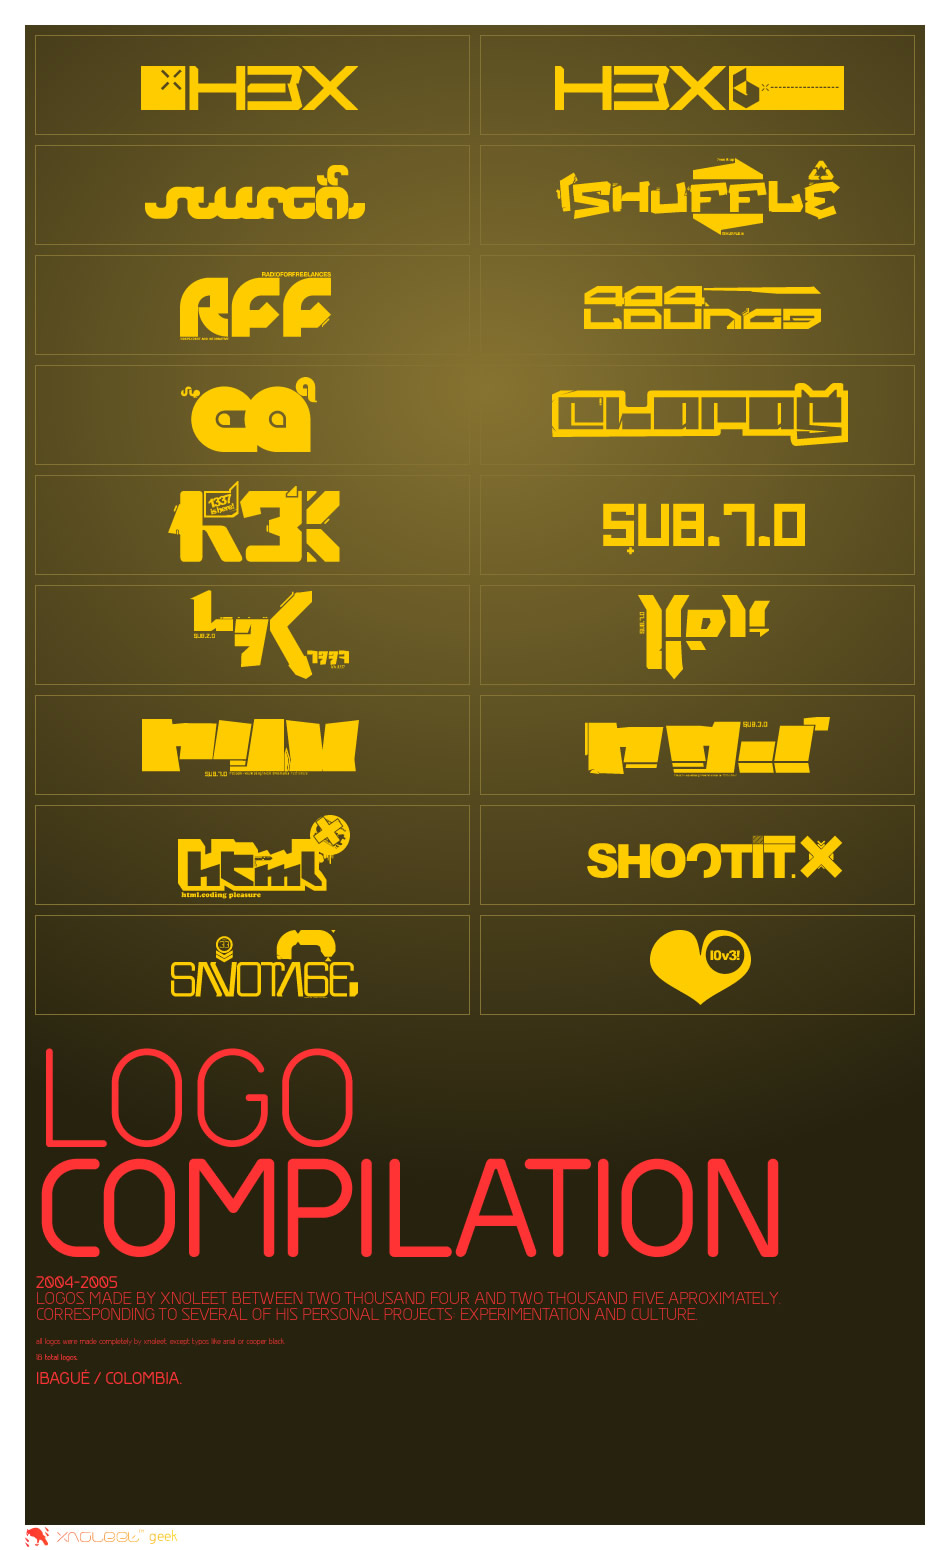 Logo Compilation by xnoleet